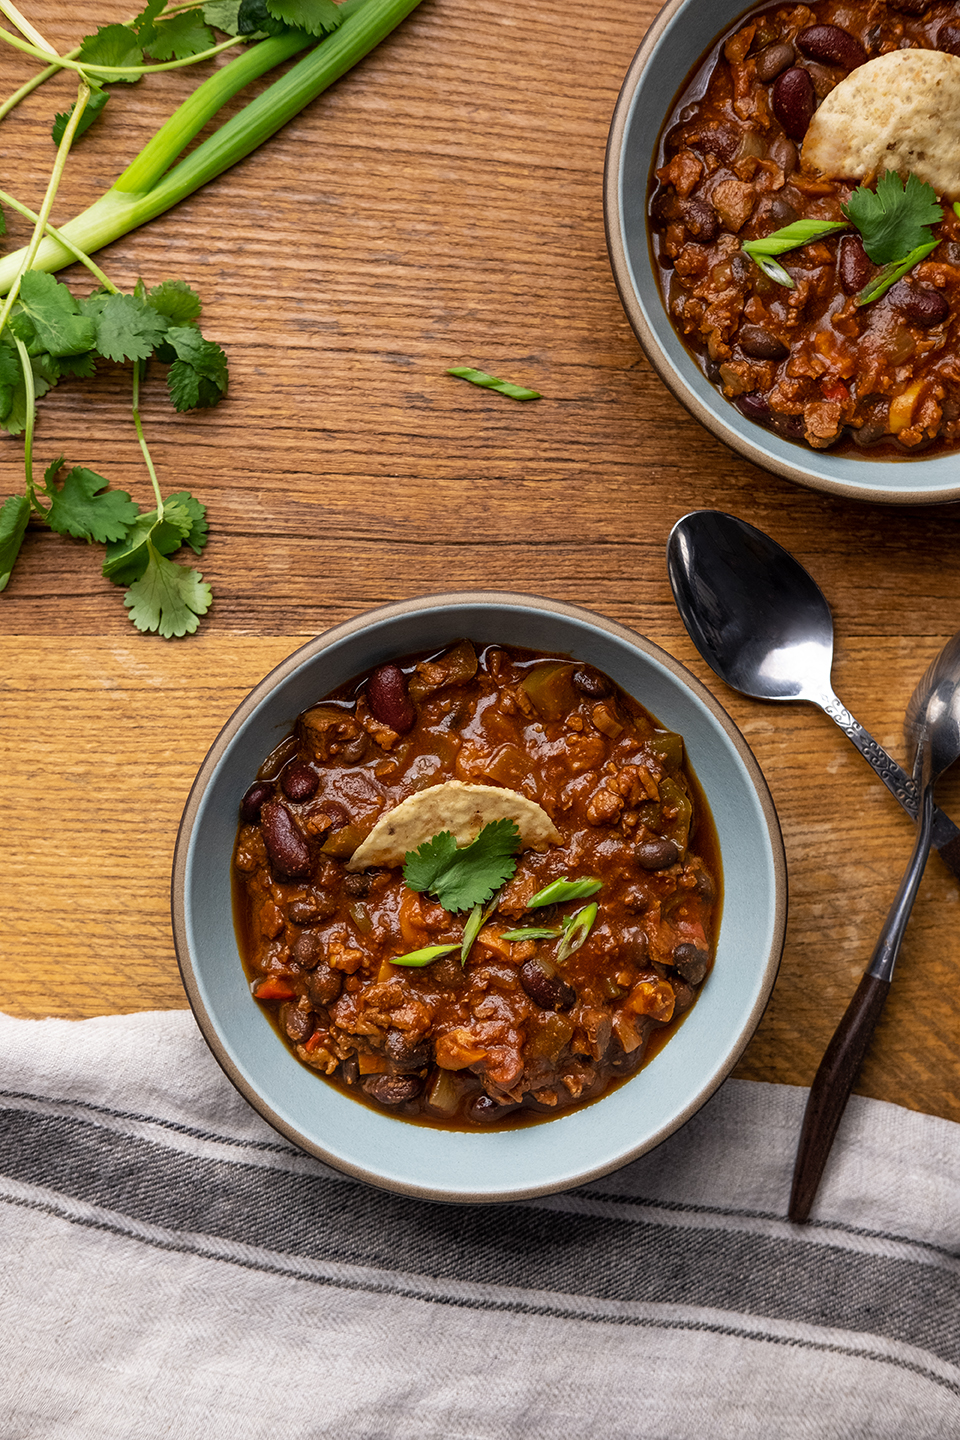 Brilliant_Pixel_Imaging_Food_Photography_Jodiloves_Chili3.jpg